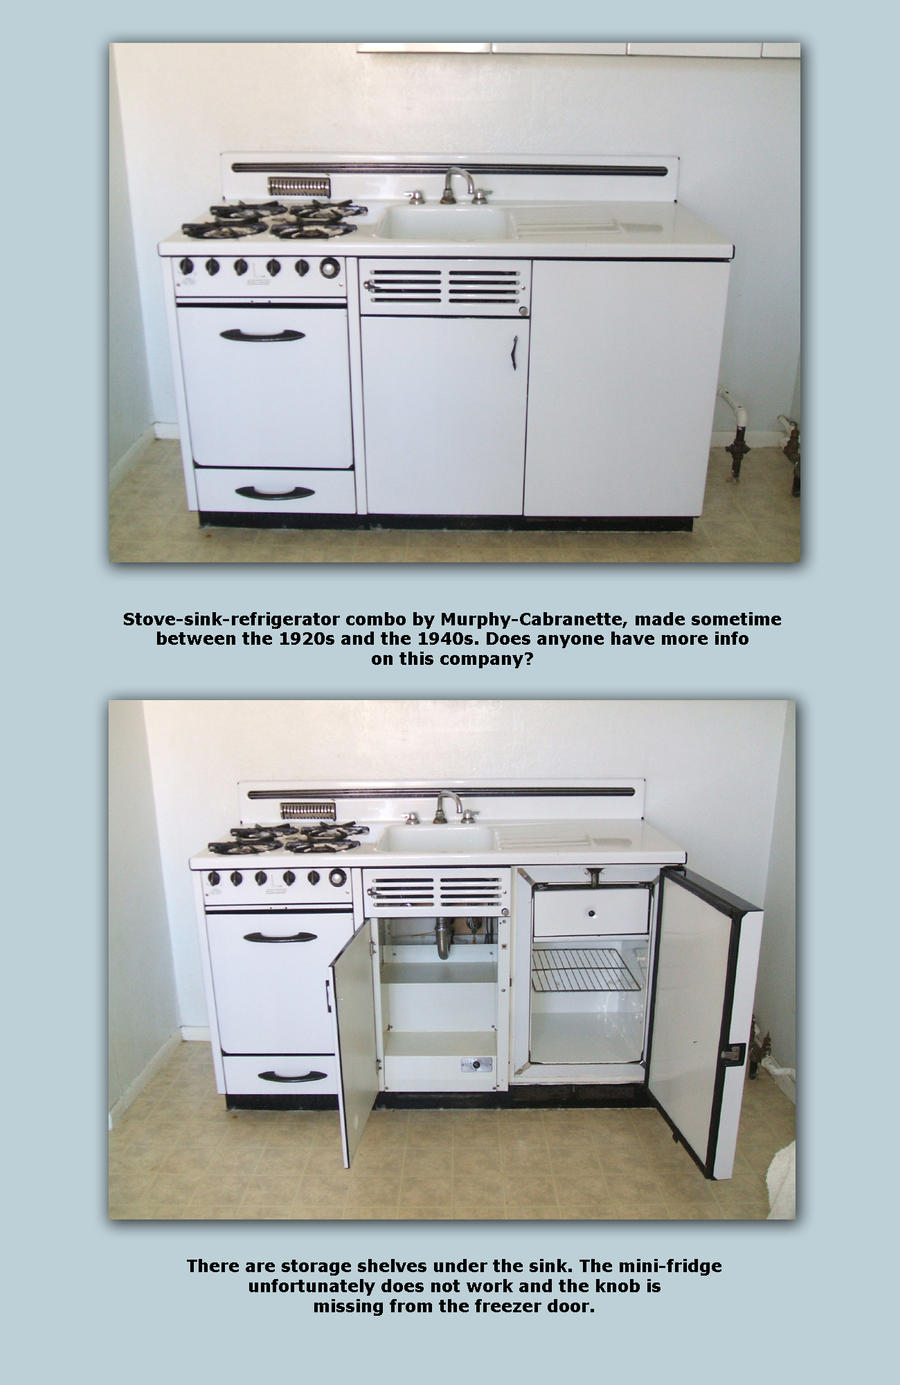 Medium image of     vintage appliance combo by vivienne mercier